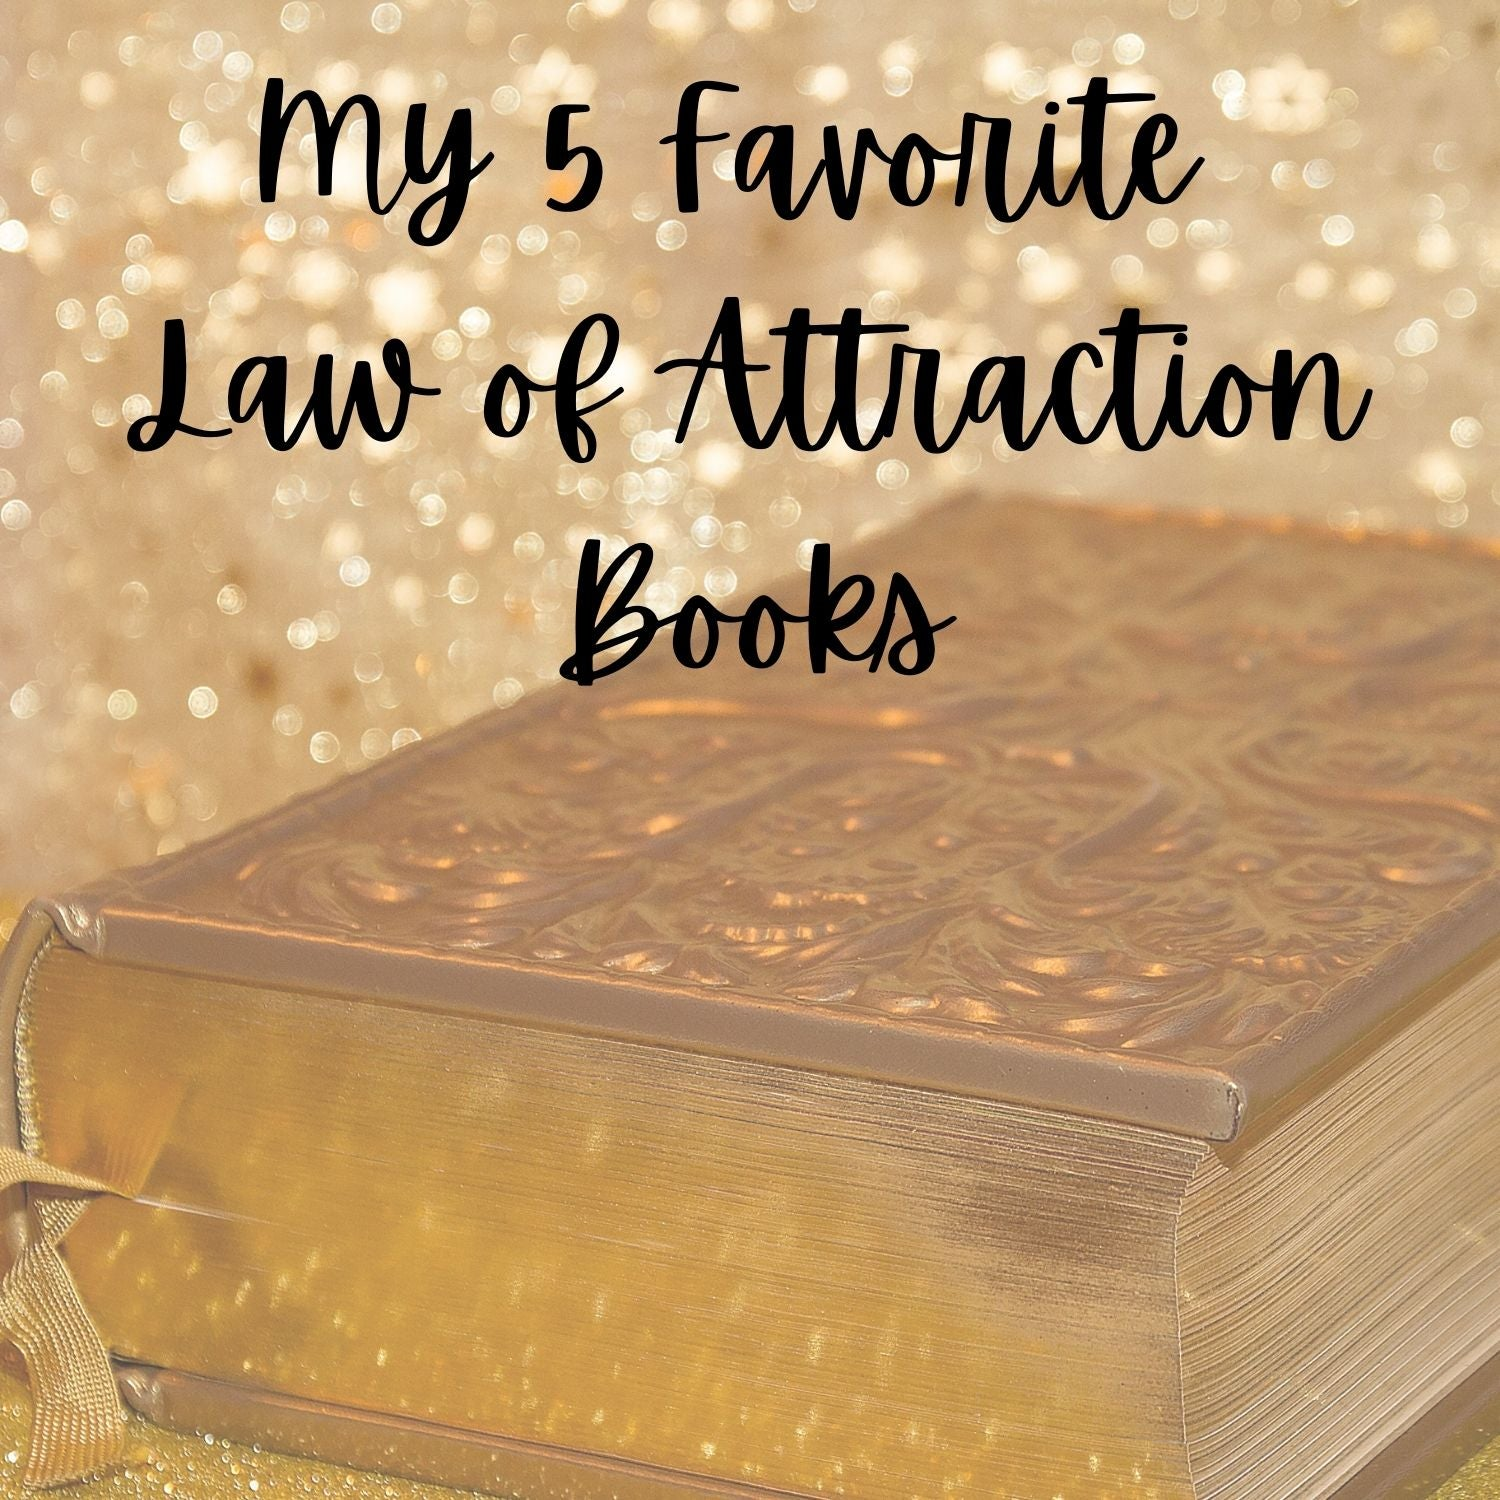 My 5 Favorite Law of Attraction Books